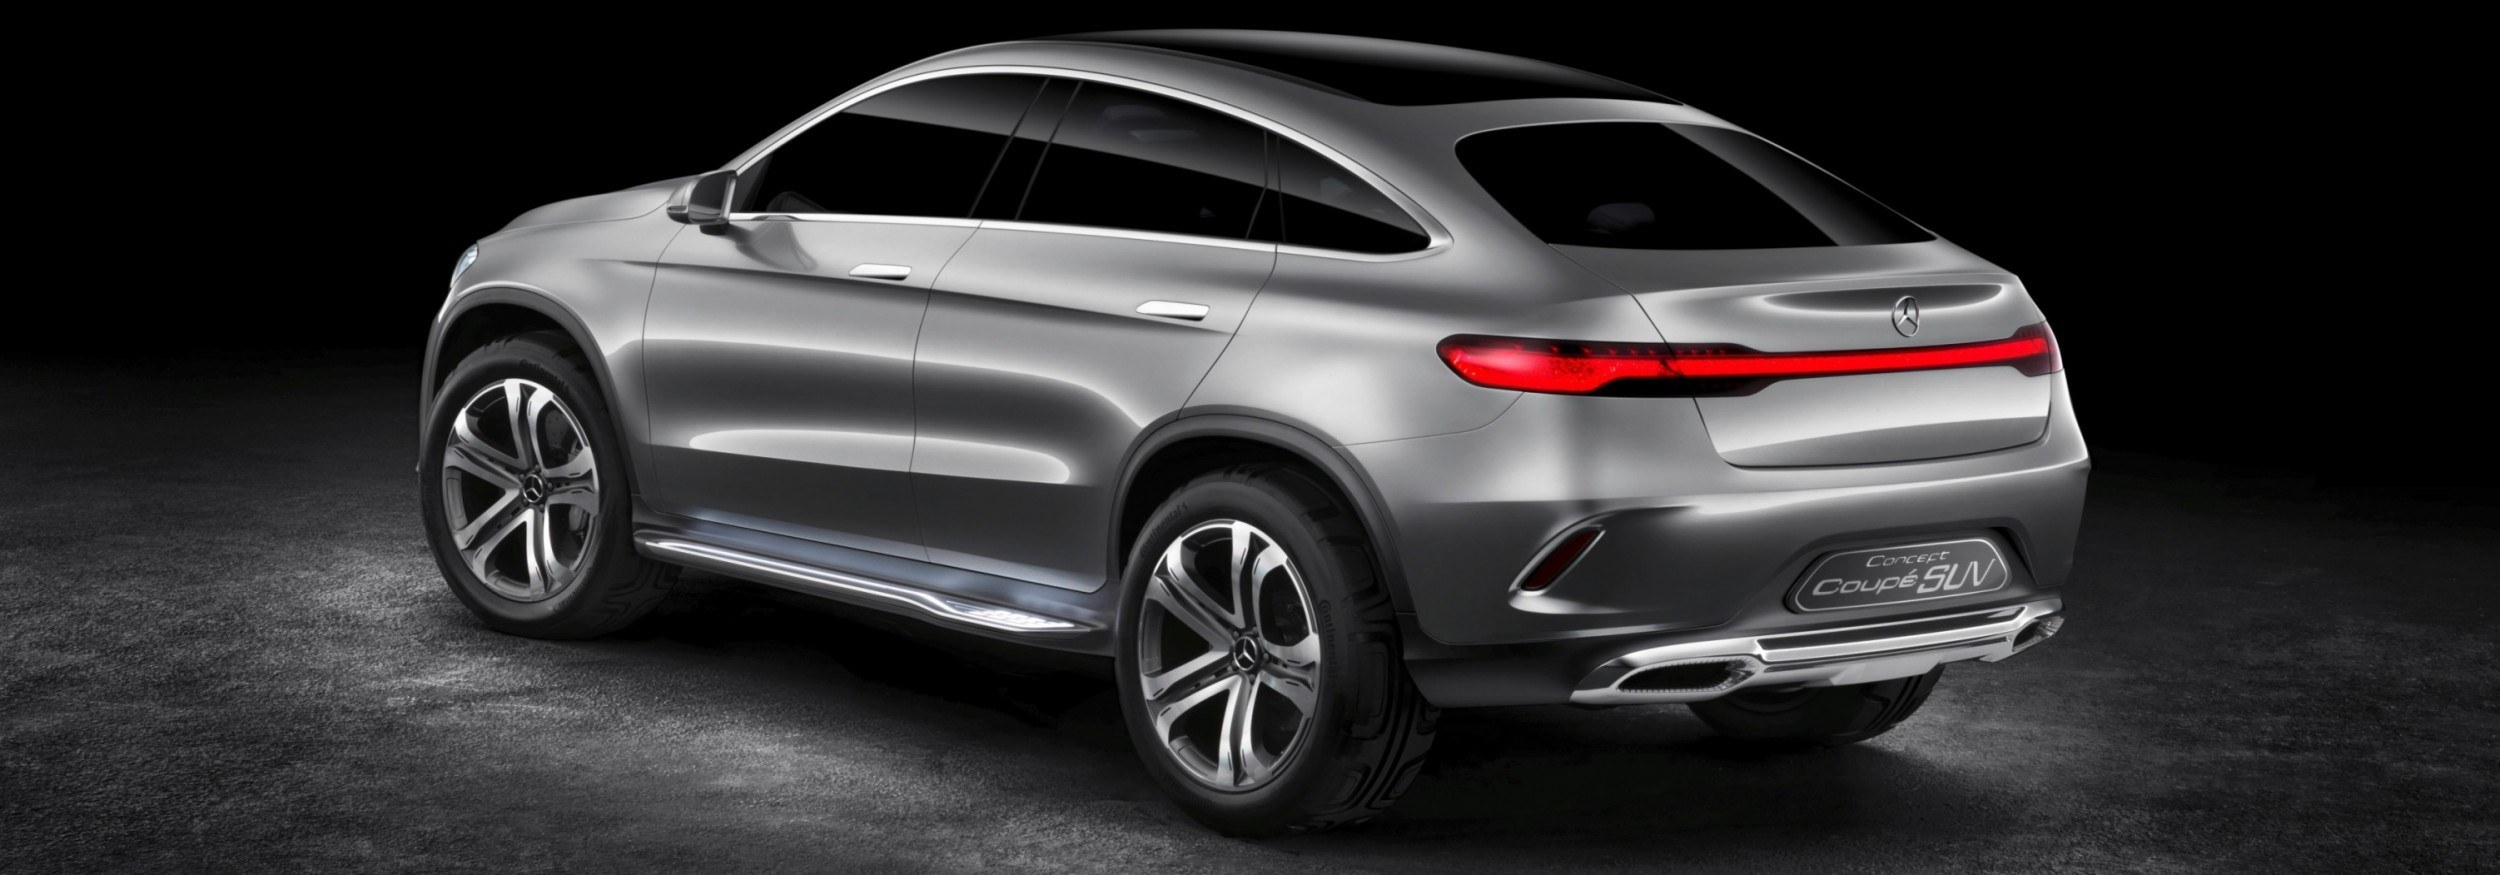 Mercedes-Benz Concept Coupe SUV - Beijing 2014 - Sets New ...